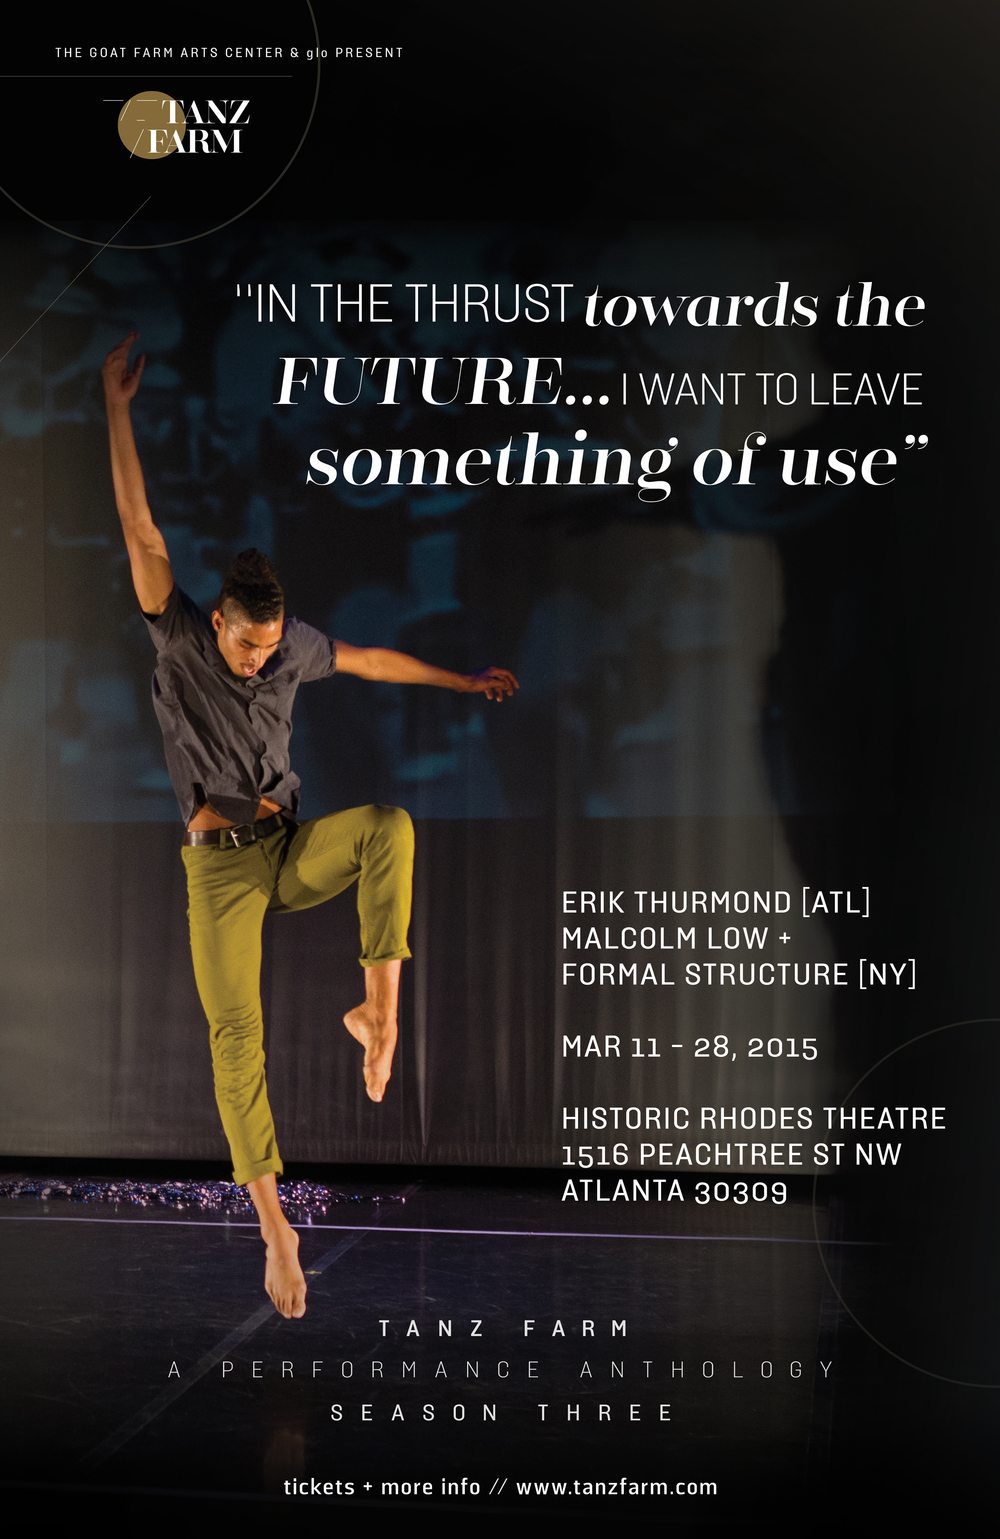 In thrust towards the future...I want to leave something of us :: Erik Thurmond [ATL] + Formal Structure [NY]